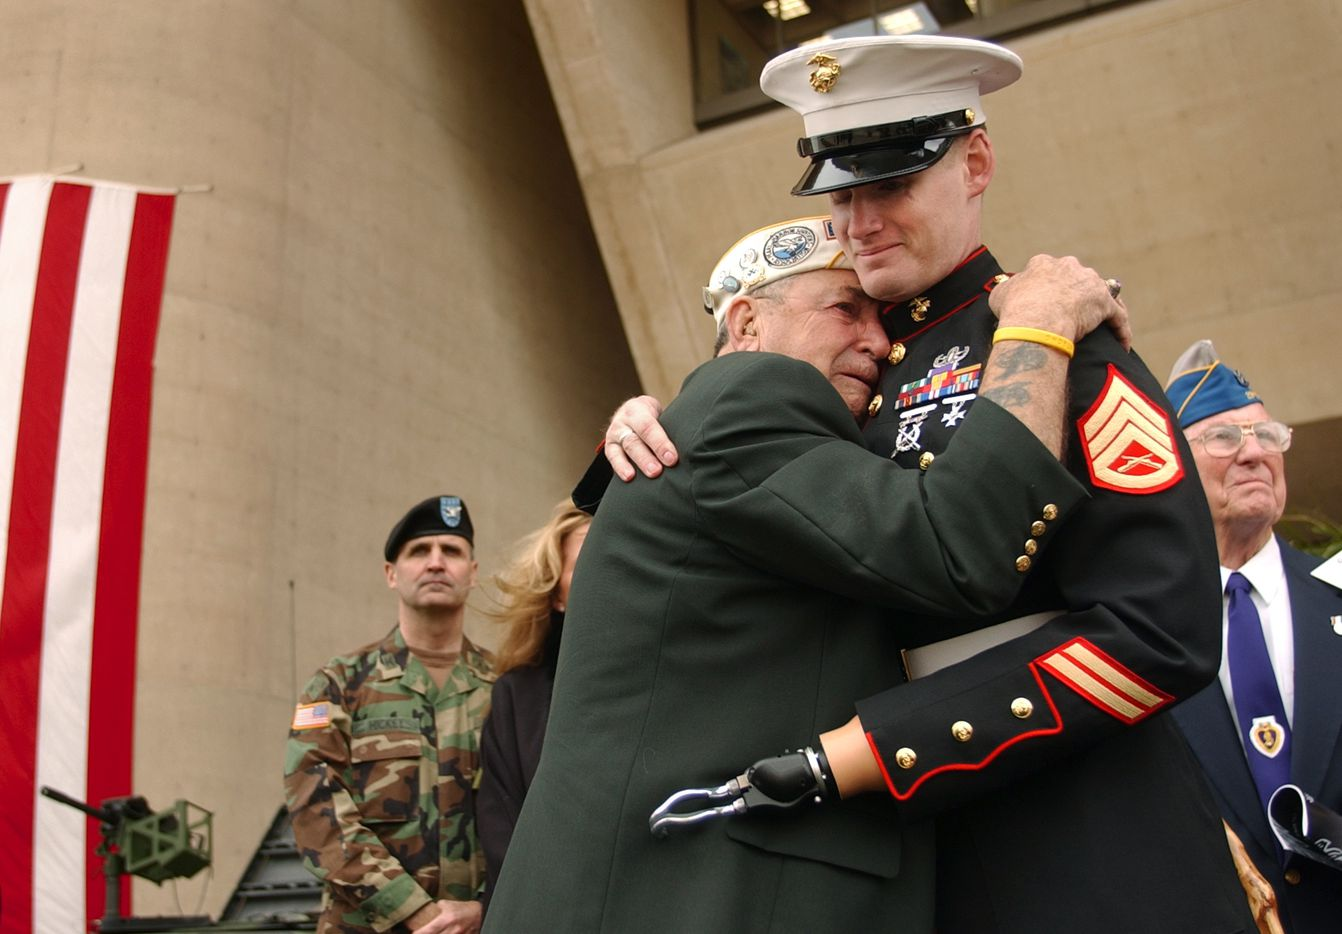 Pearl Harbor survivor Houston James of Dallas was overcome with emotion as he embraced former Marine SSgt. Mark Graunke Jr. of Flower Mound during the Dallas Veterans Day Commemoration on Nov. 10, 2004, at Dallas City Hall. Graunke, who was a member of a Marine ordnance-disposal team,  lost a hand, leg and eye while defusing a bomb in Iraq in July 2003.